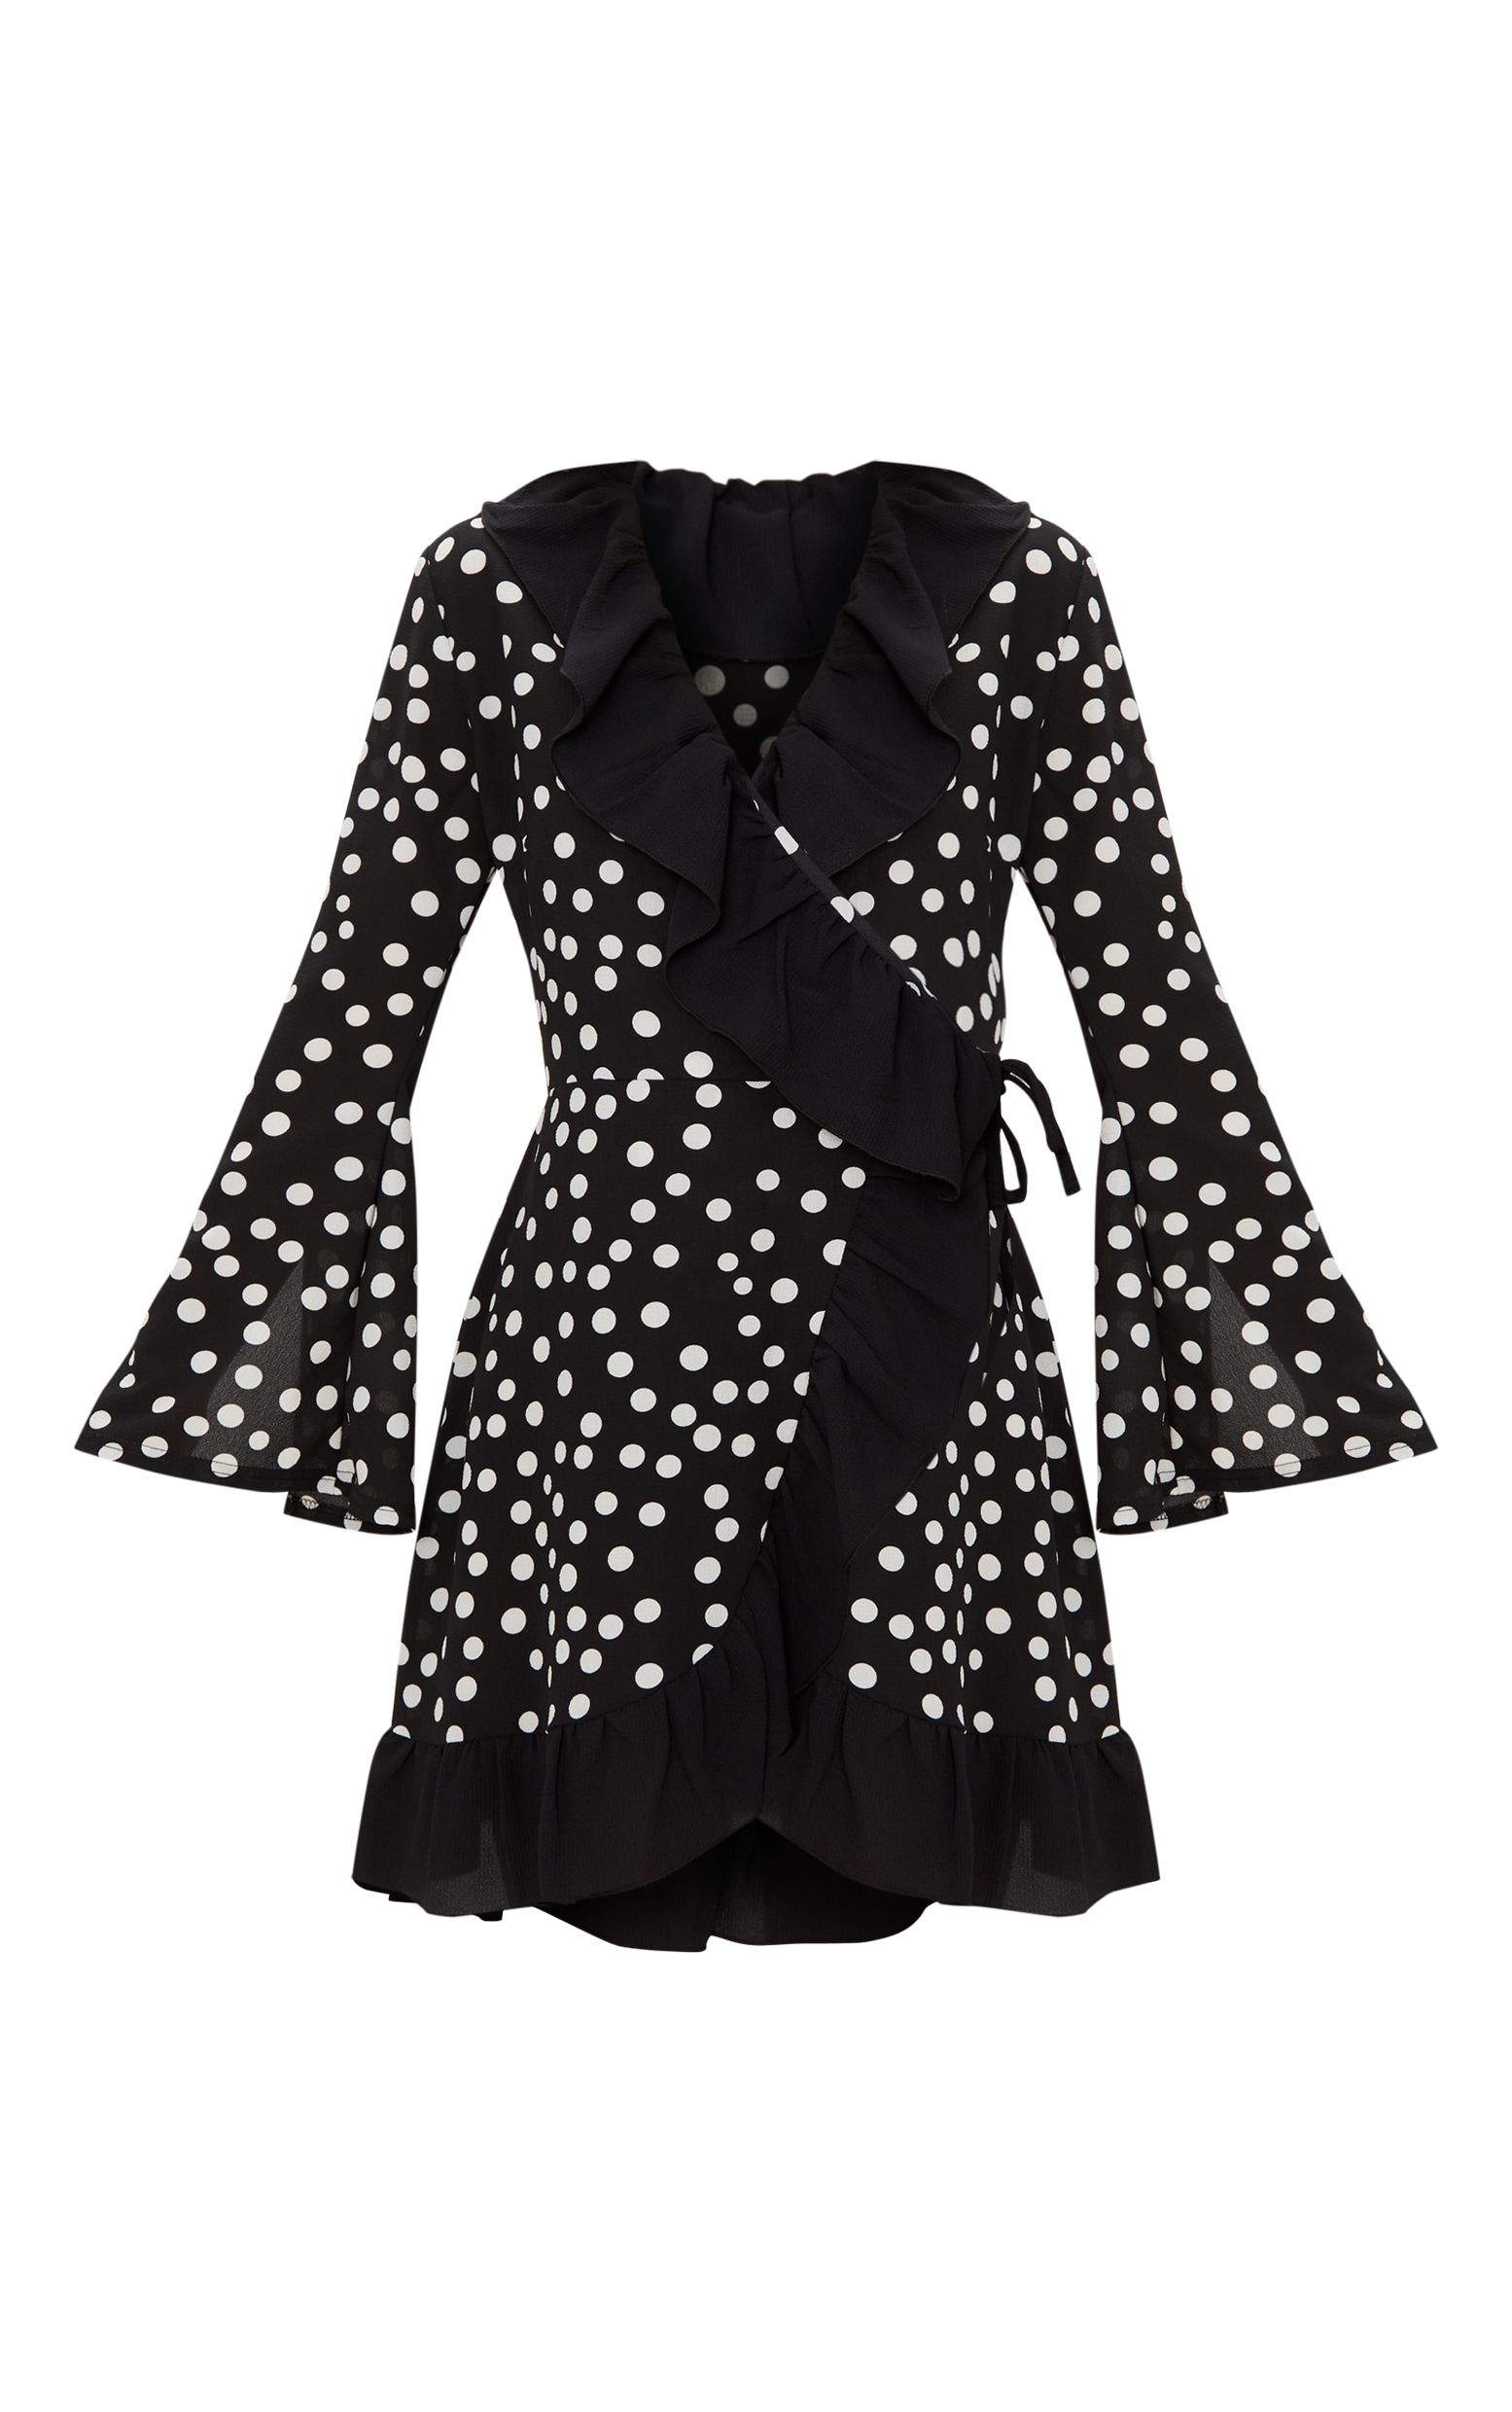 Black Polka Dot Flare Sleeve Frill Detail Tea Dress 3